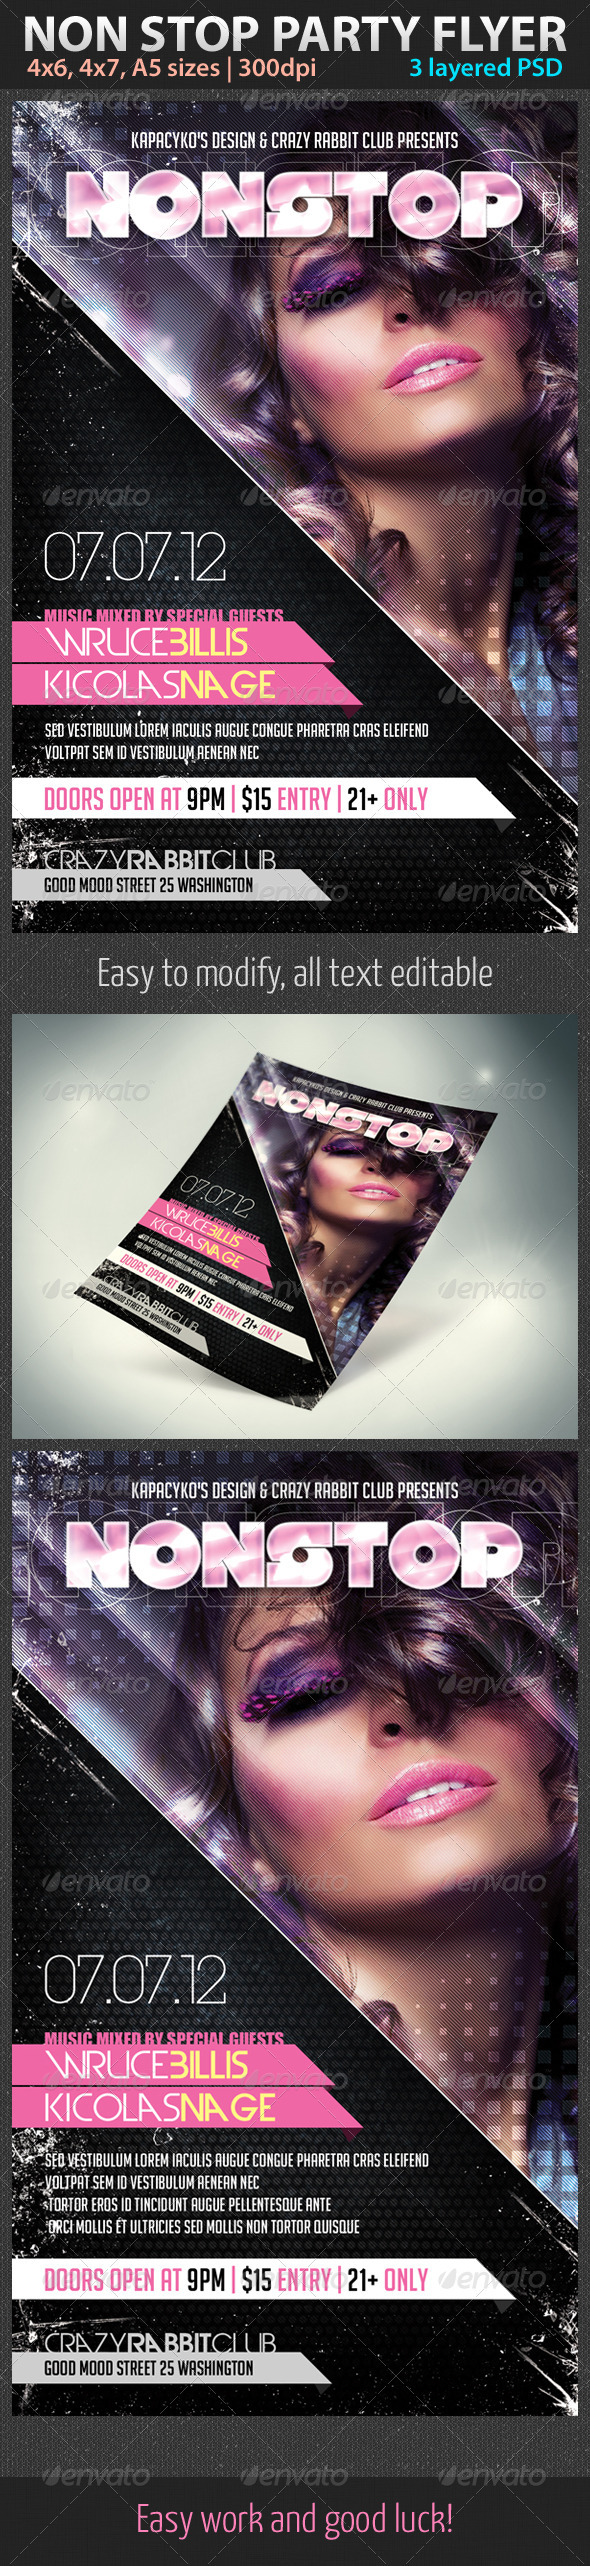 Non Stop Party Flyer - Clubs & Parties Events